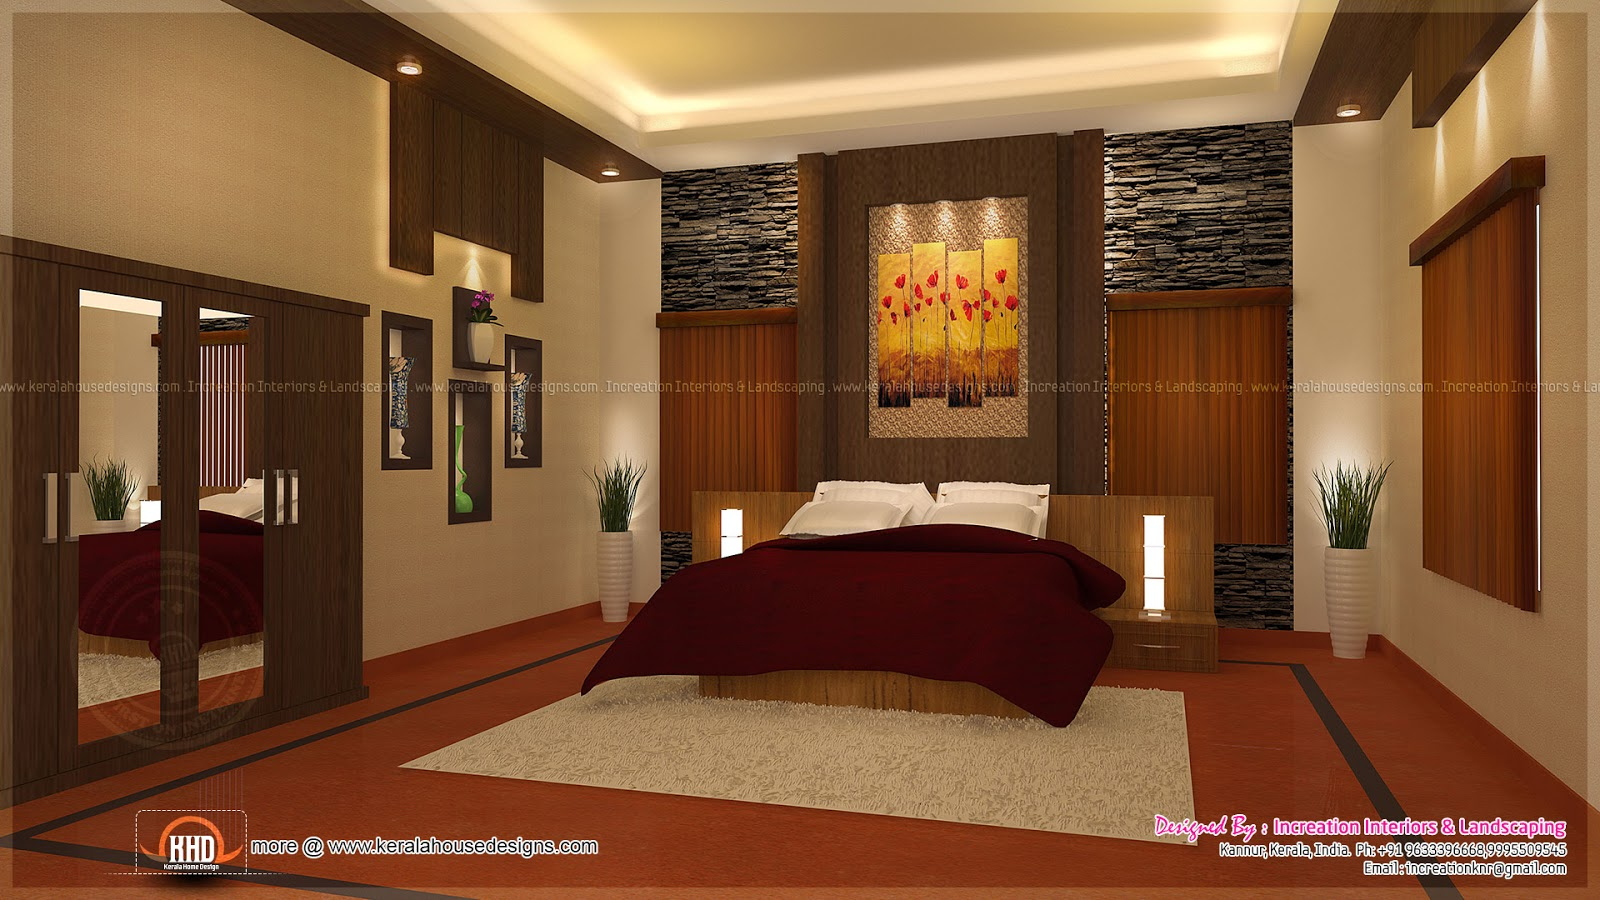 House interior ideas in 3d rendering kerala home design for Home inner design